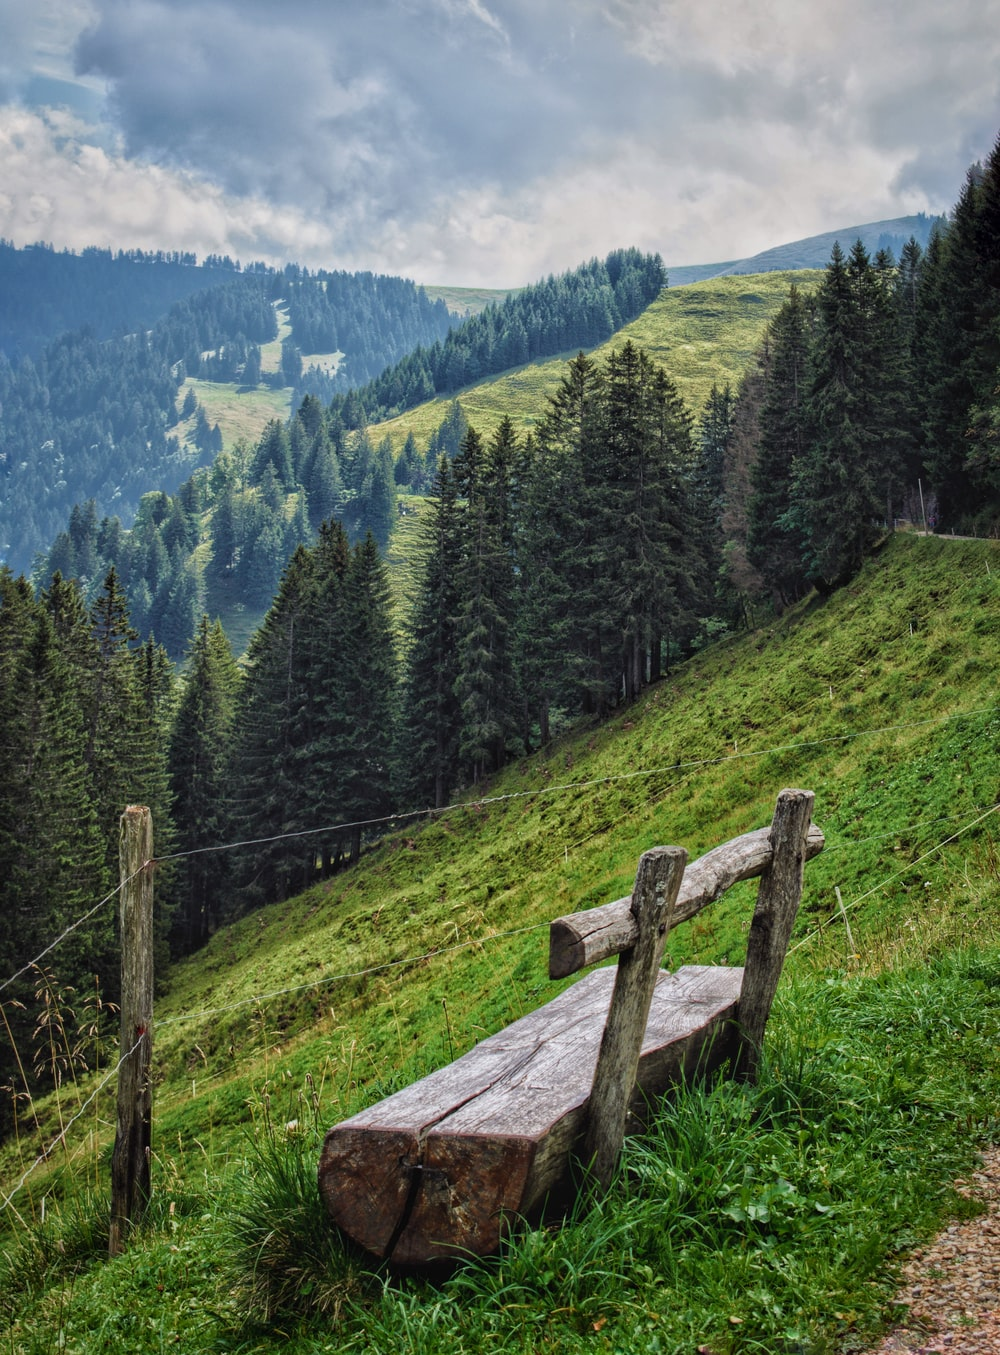 brown wooden fence on green grass field near green trees and mountains during daytime